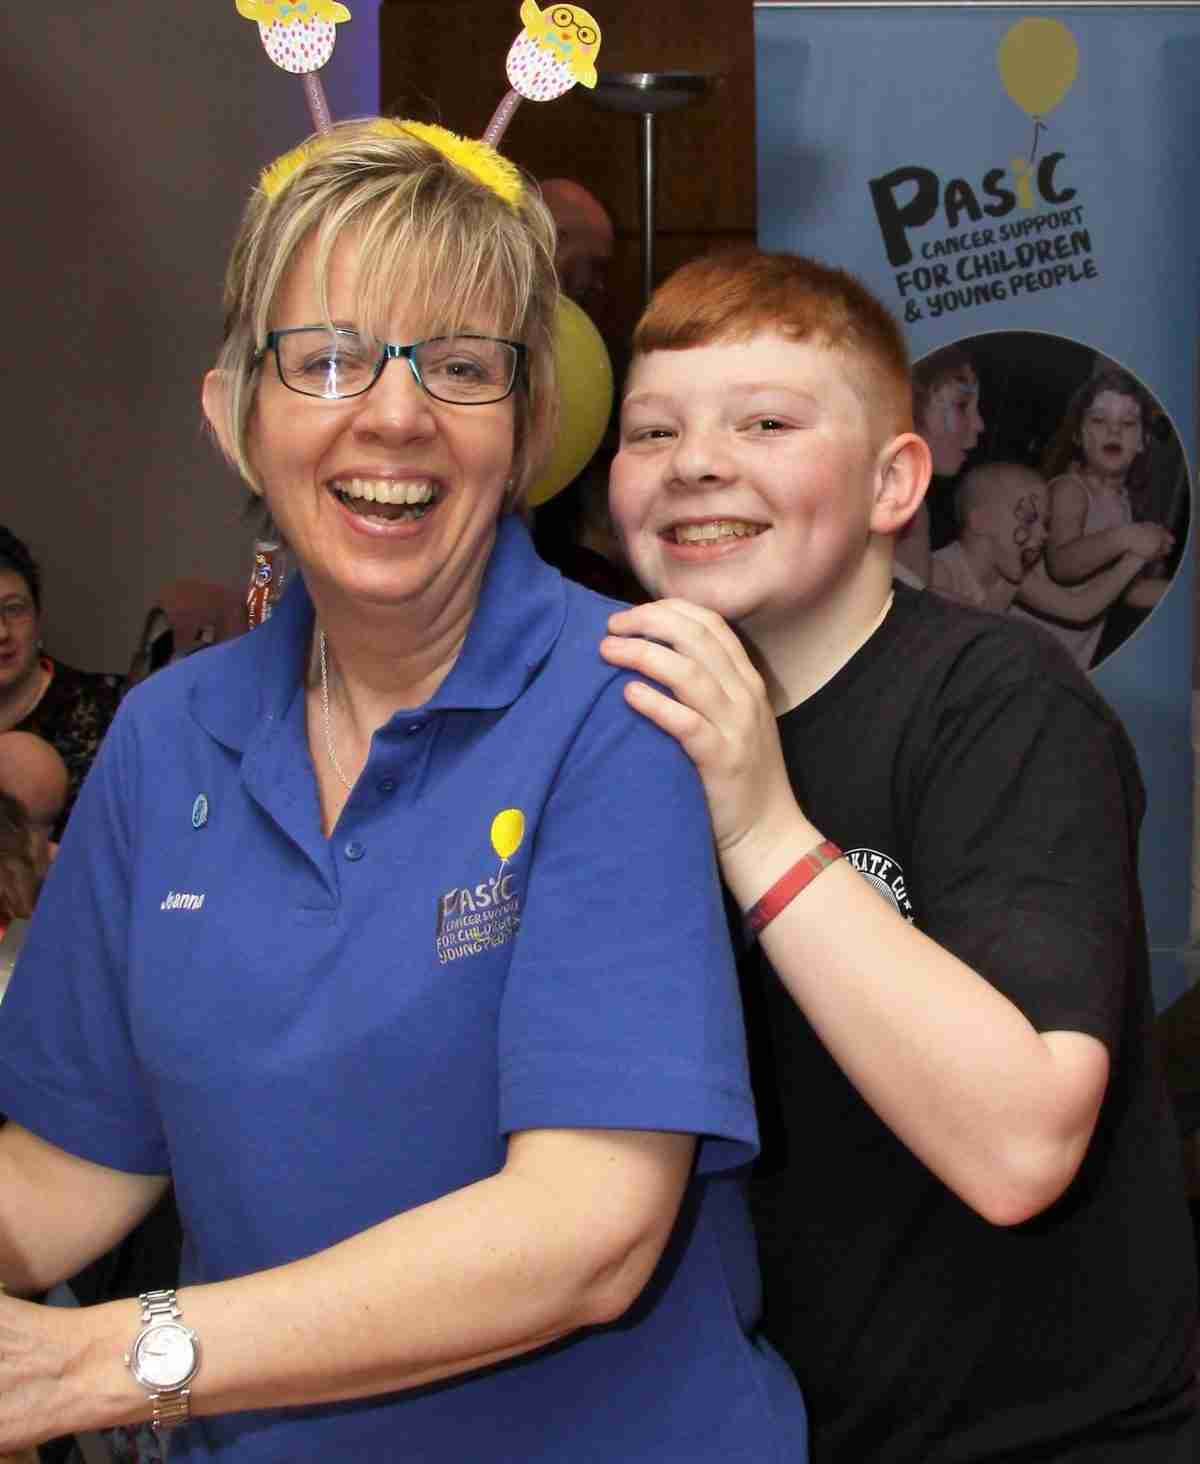 A day in the life of a PASIC family support worker